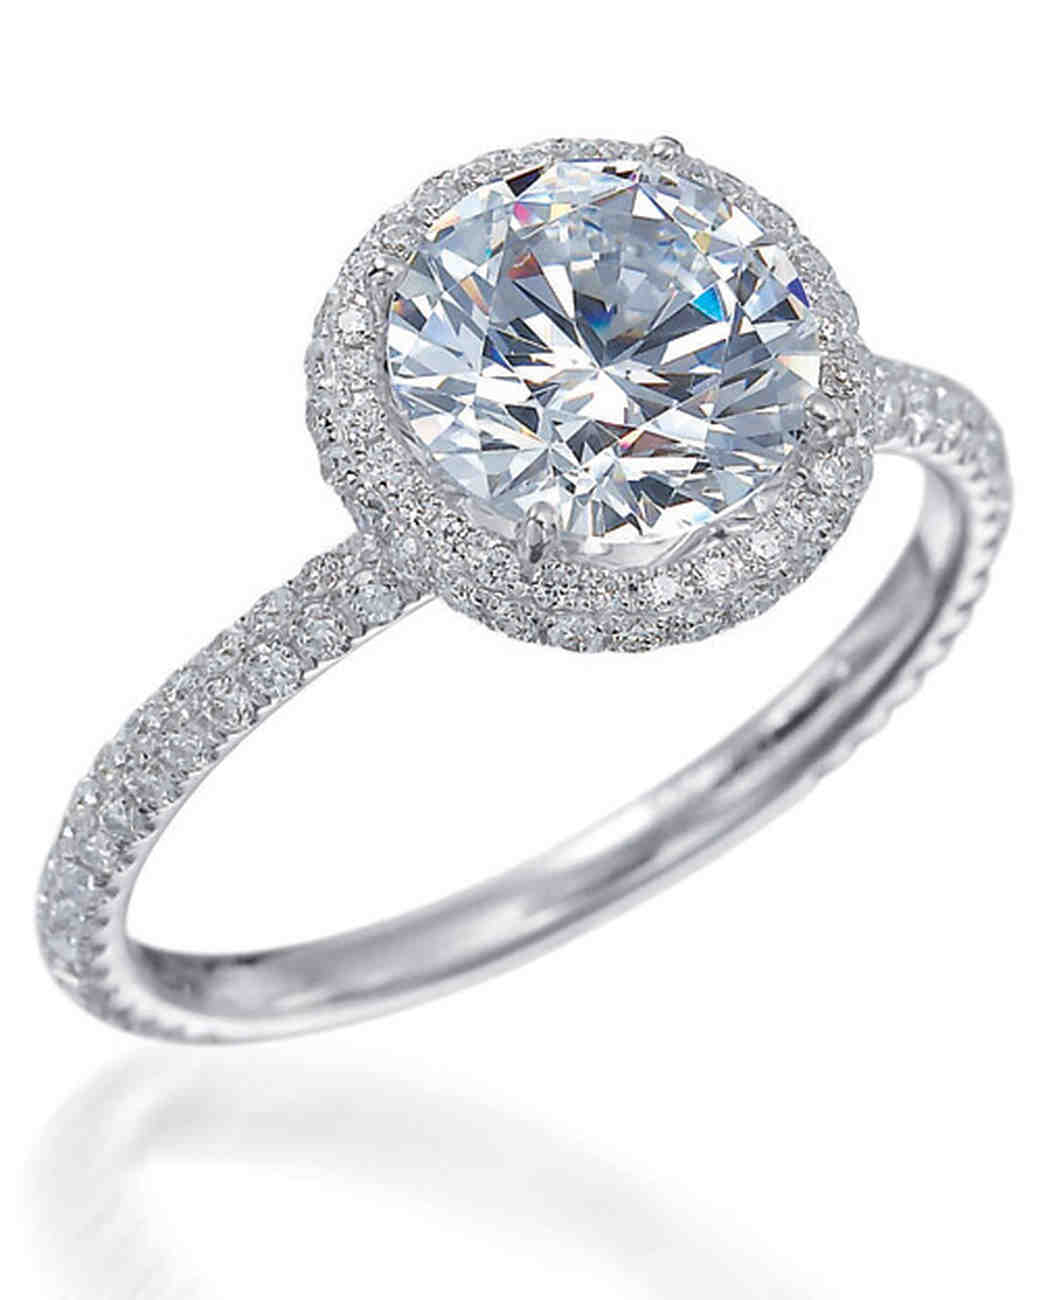 RoundCut Diamond Engagement Rings Martha Stewart Weddings